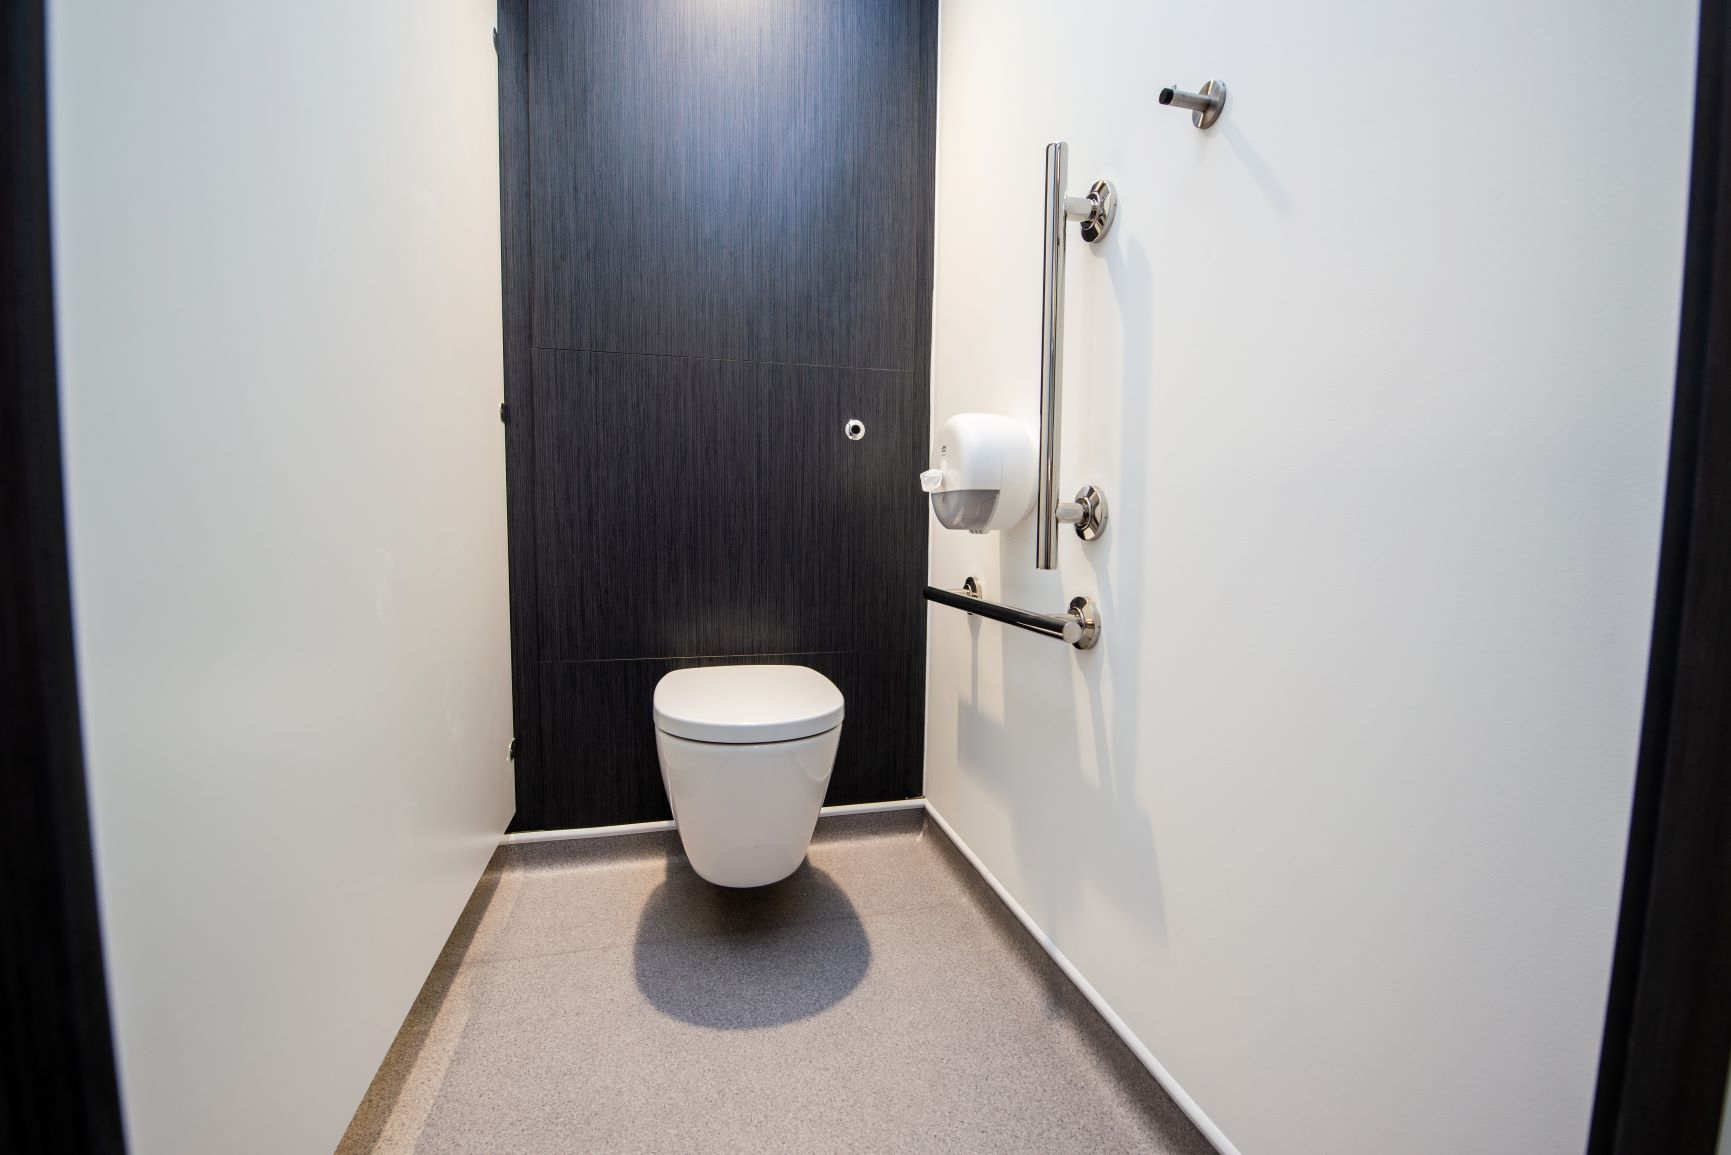 What Size is an Ambulant Toilet?